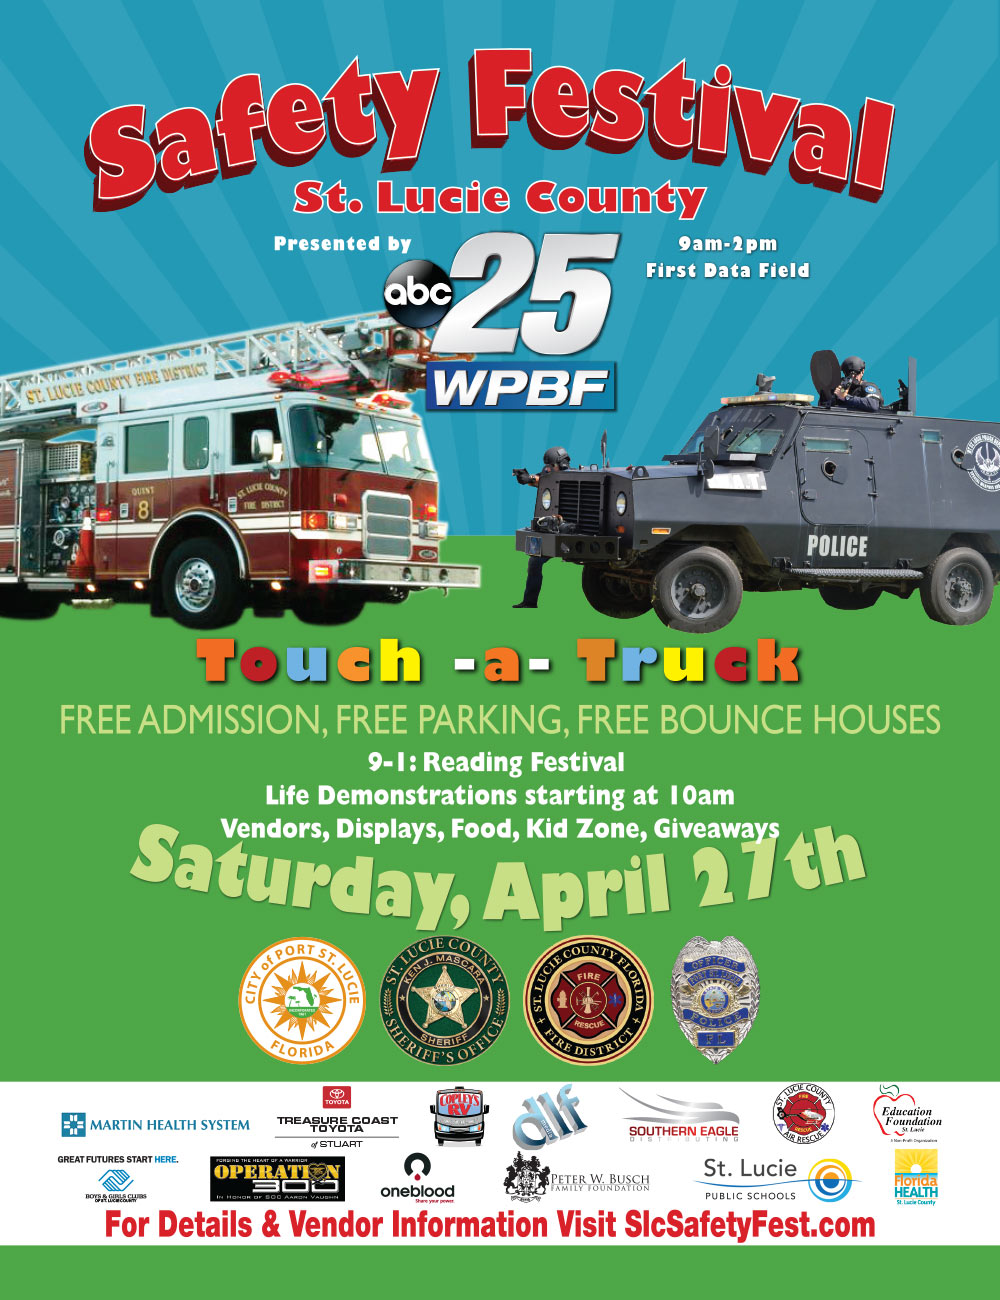 St. Lucie County Safety Festival 2019